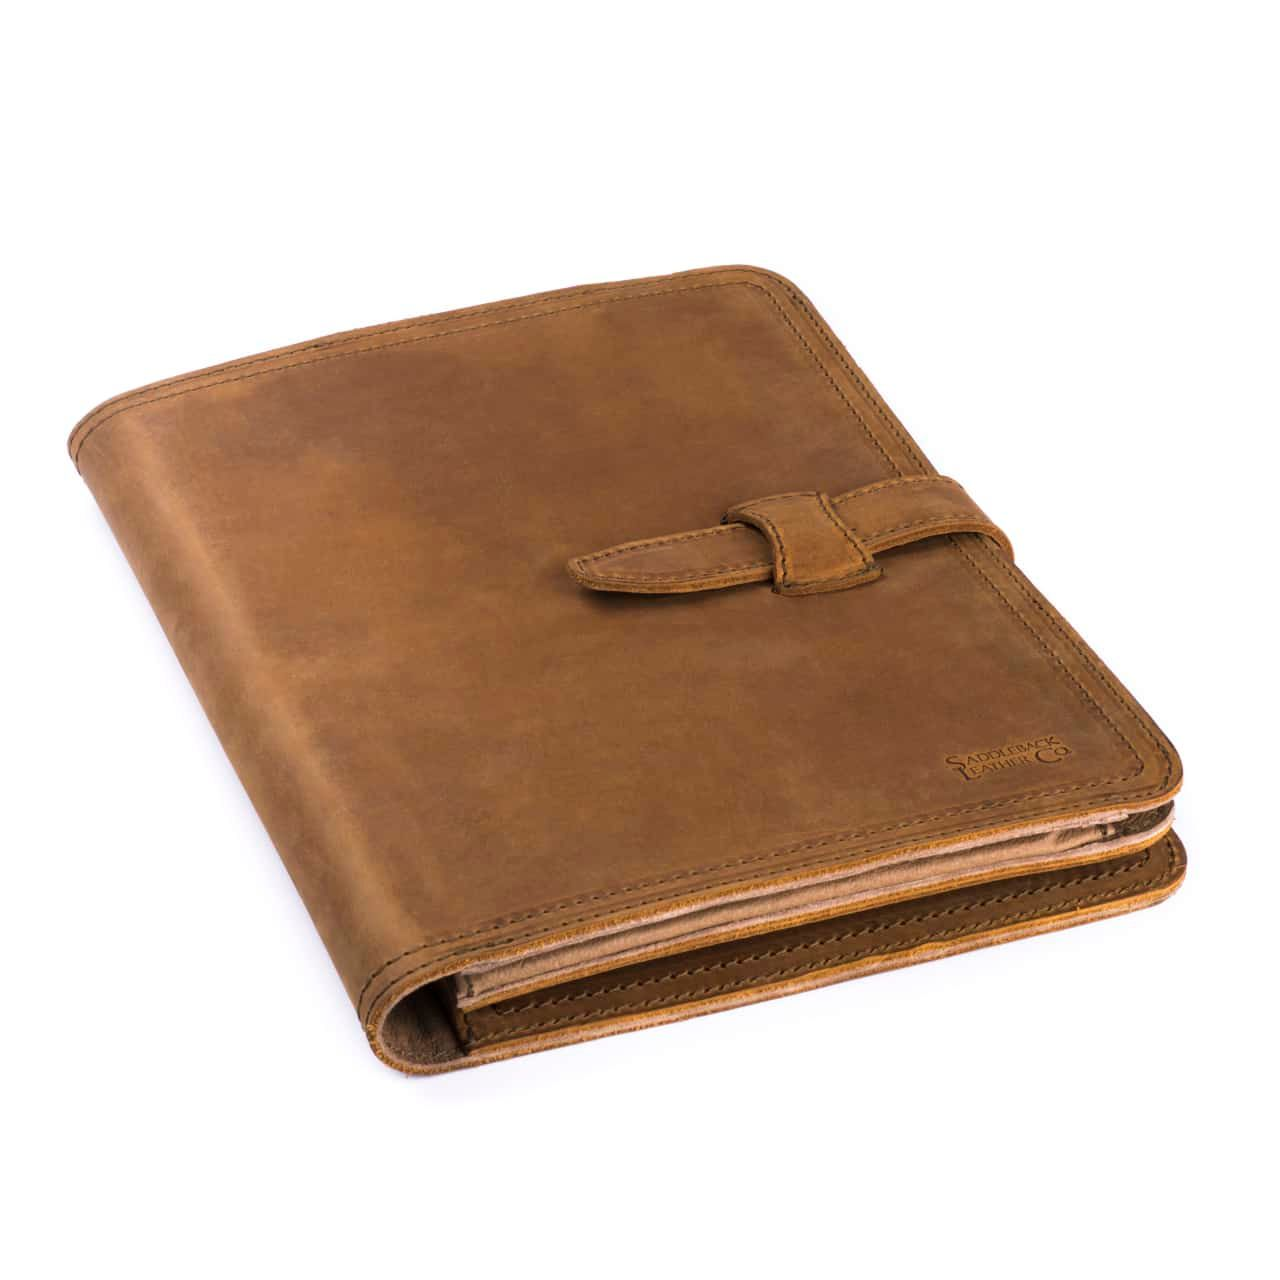 Leather Tablet Notepad Holder Closed in the Color Tobacco